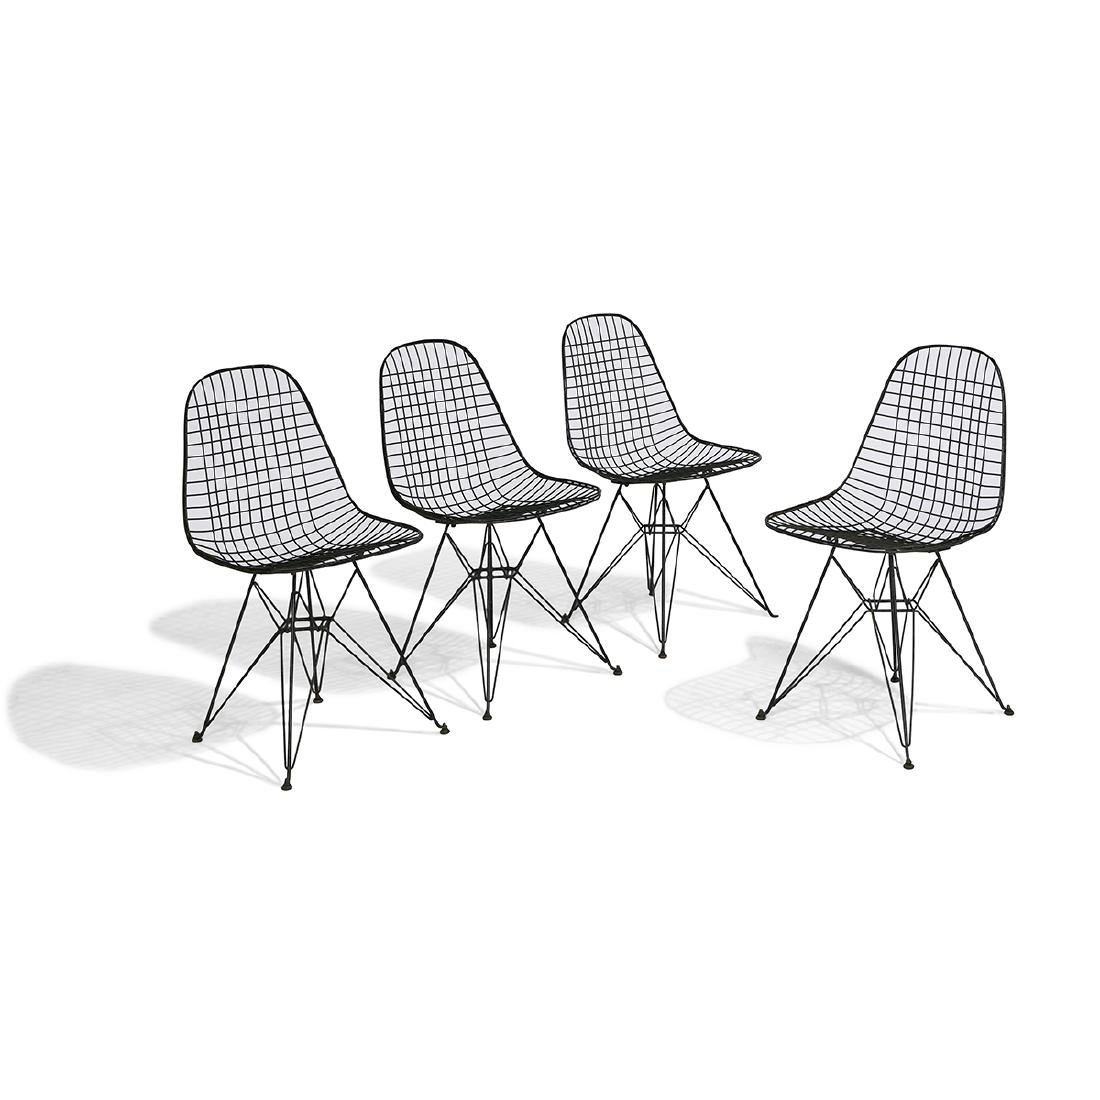 Charles & Ray Eames DKR-1 chairs, four